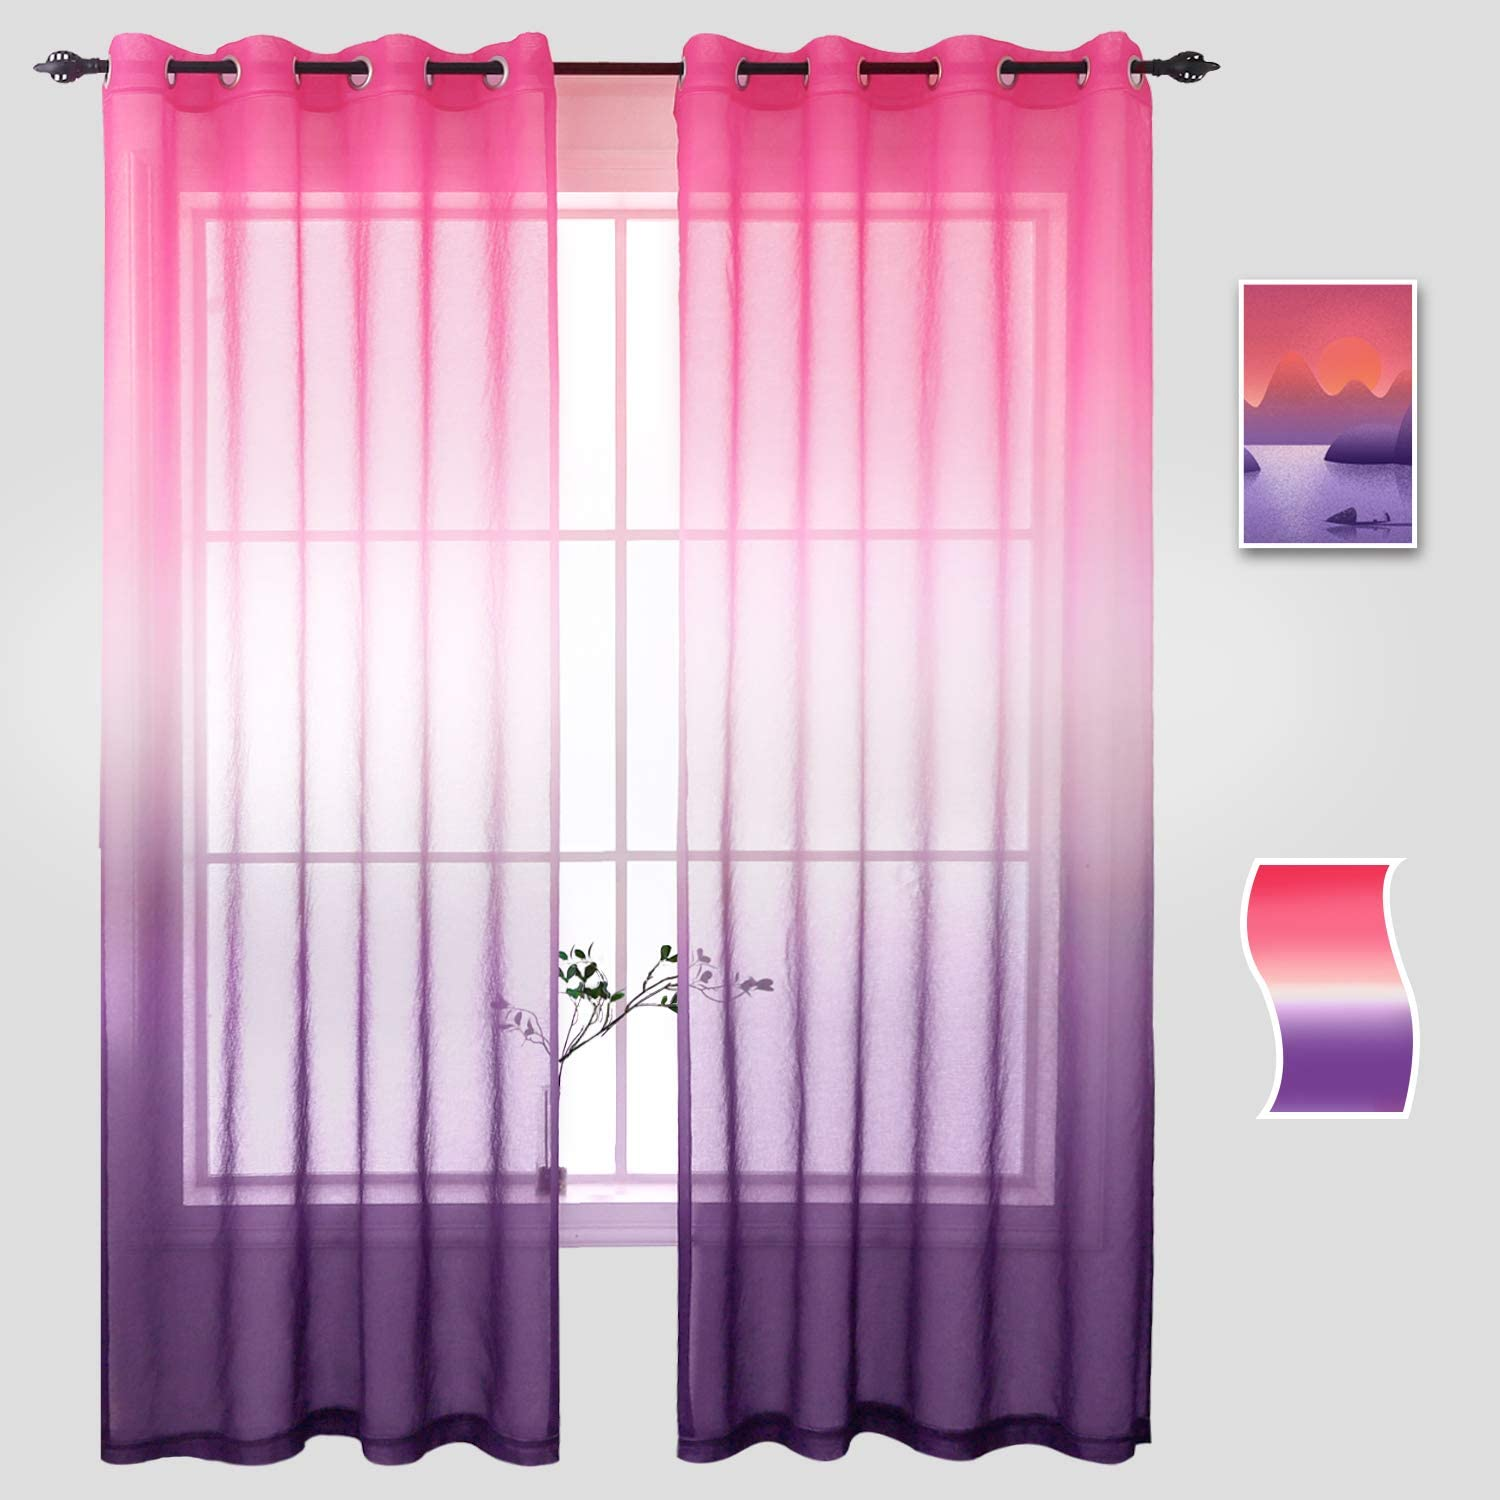 Naturoom Girls Purple Curtains for Bedroom, Ombre Semi Sheer Voile Light Filtering Window Curtain Grommet Panels for Living Room & Dining Room - 54 W x 63 inch Long